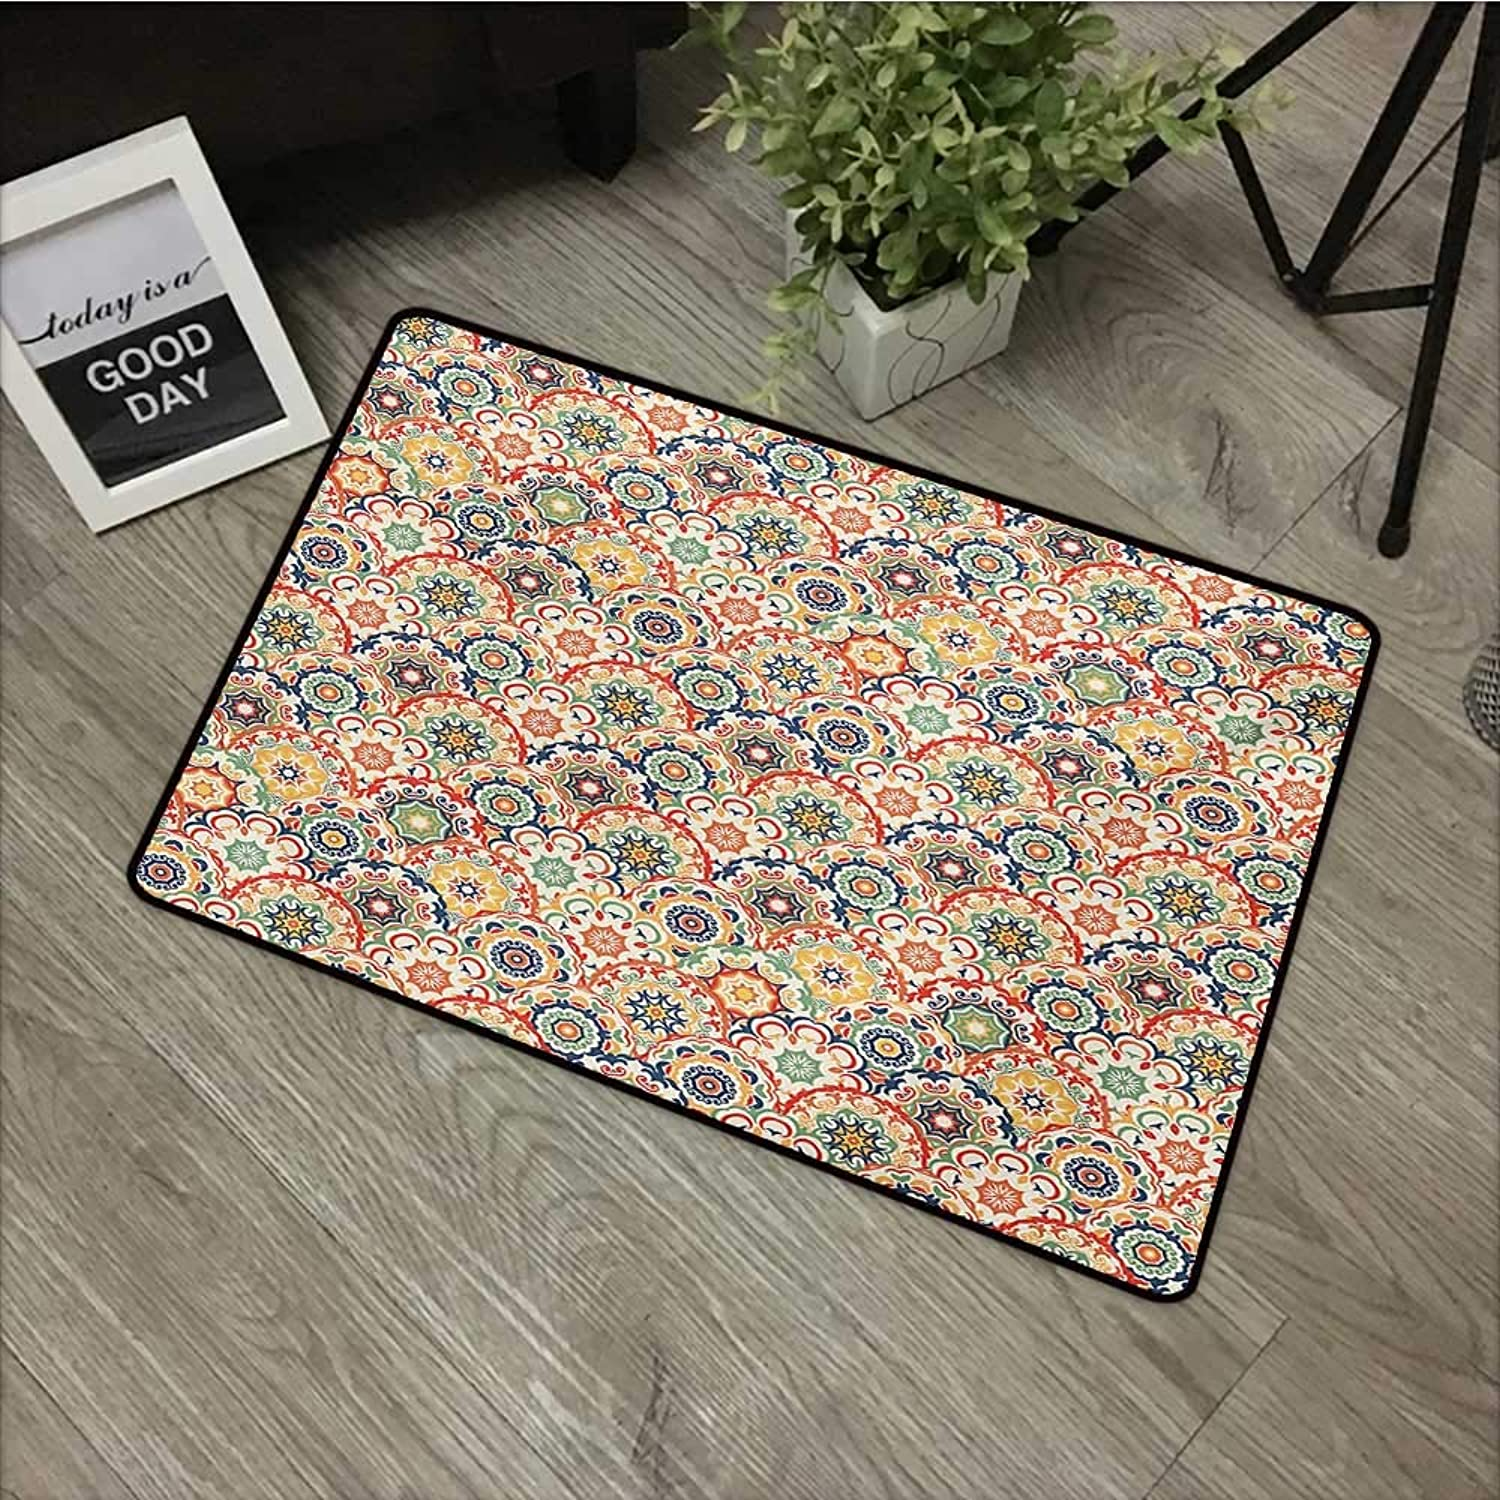 Meeting Room mat W31 x L47 INCH Geometric,Oriental Floral Display in Old Fashioned Traditional Style Textured Craft Motif,Multicolor Easy to Clean, no Deformation, no Fading Non-Slip Door Mat Carpet